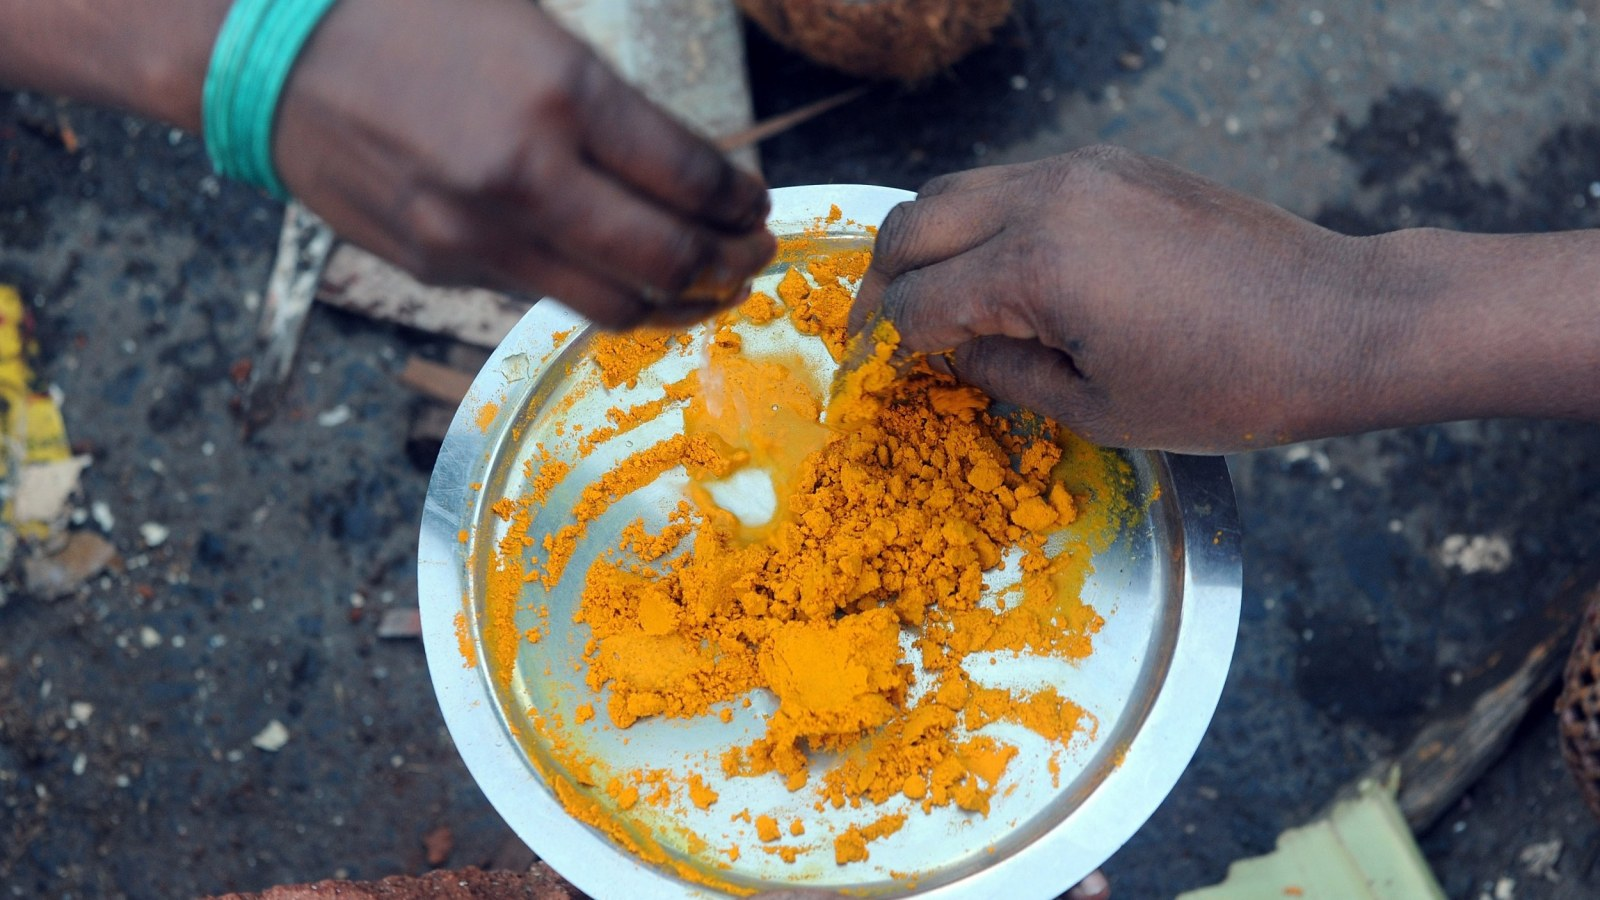 Is Turmeric Safe? Supplement May Have Caused Autoimmune